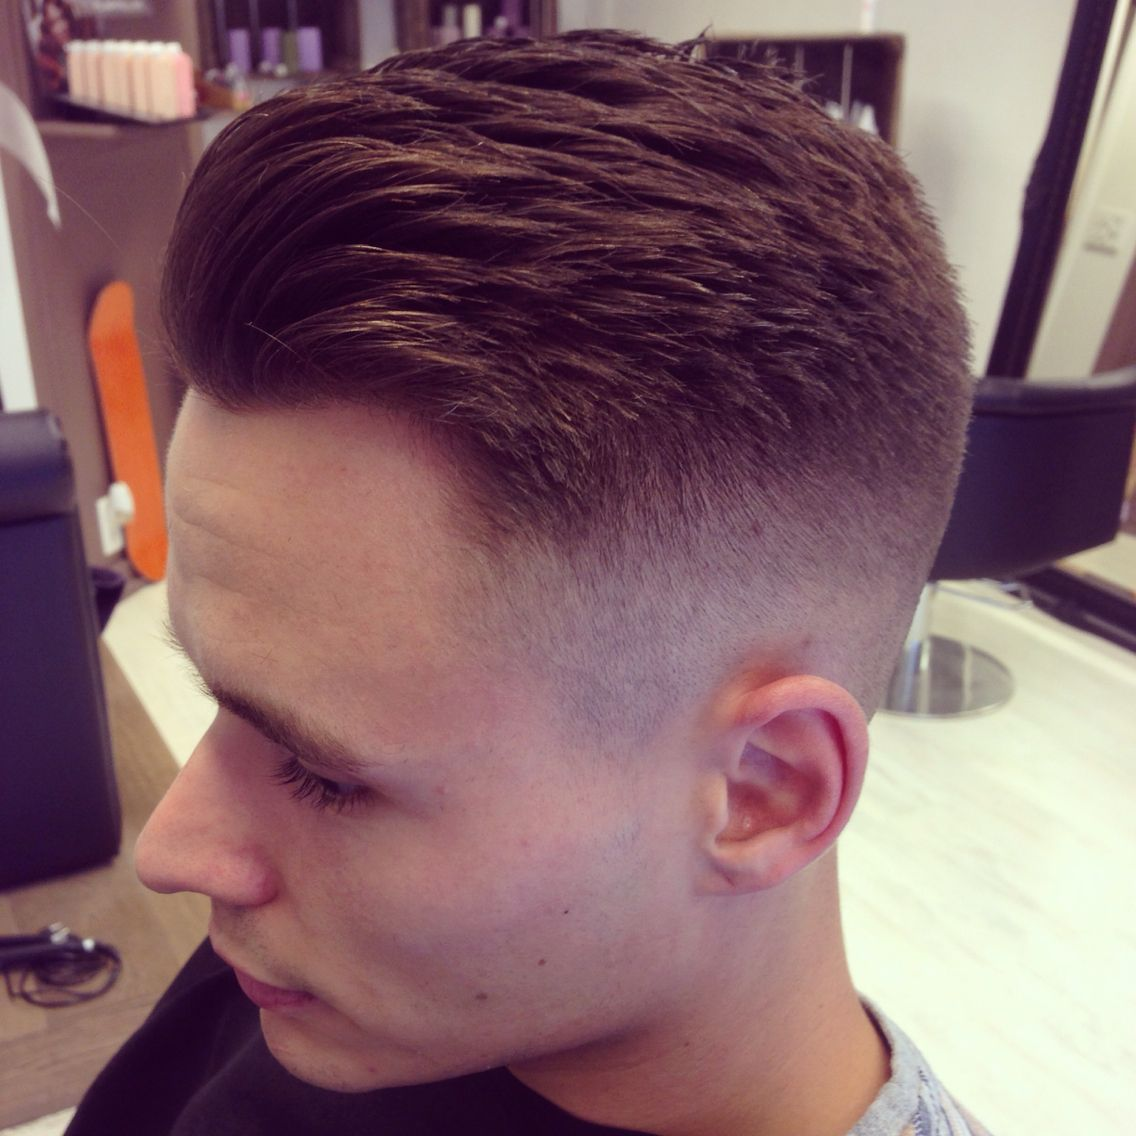 Haircut styles for men fades another day another fade by handcraft  men hairstyle  pinterest